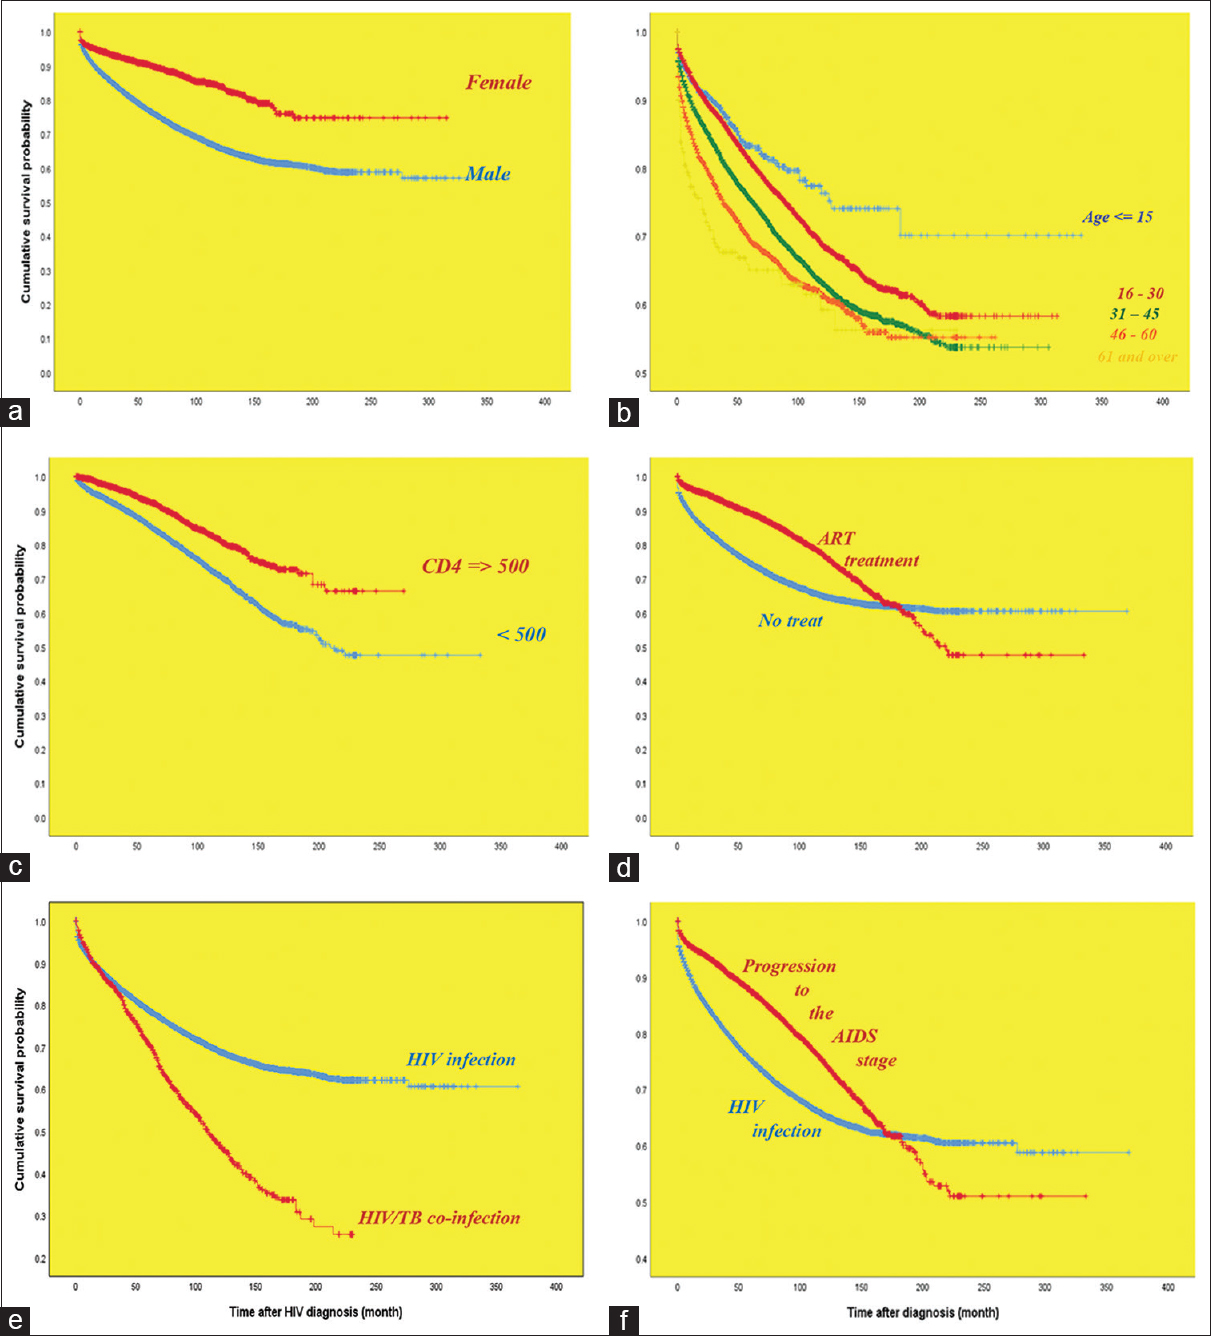 Figure 2: Kaplan–Meier product limits estimates for probability of survival by (a) gender, (b) age at diagnosis, (c) baseline CD4 count, (d) antiretroviral treatment, (e) tuberculosis status, and (f) disease stage status